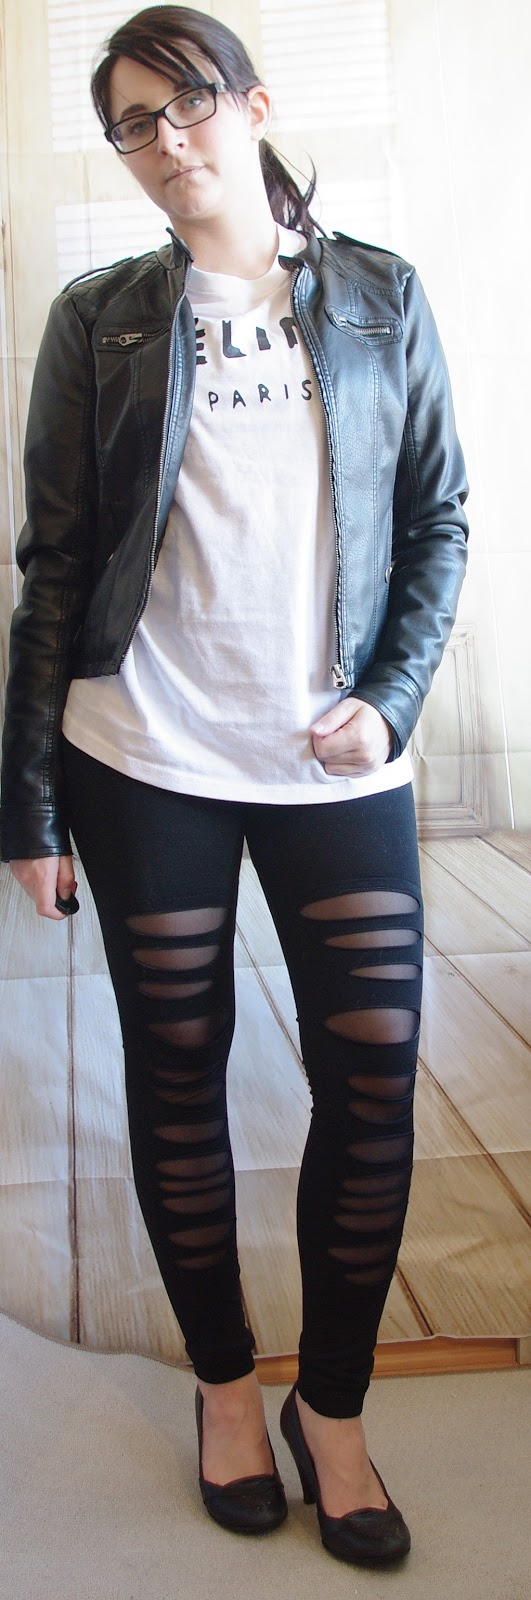 Outfit Leder, Leggins, Pumps